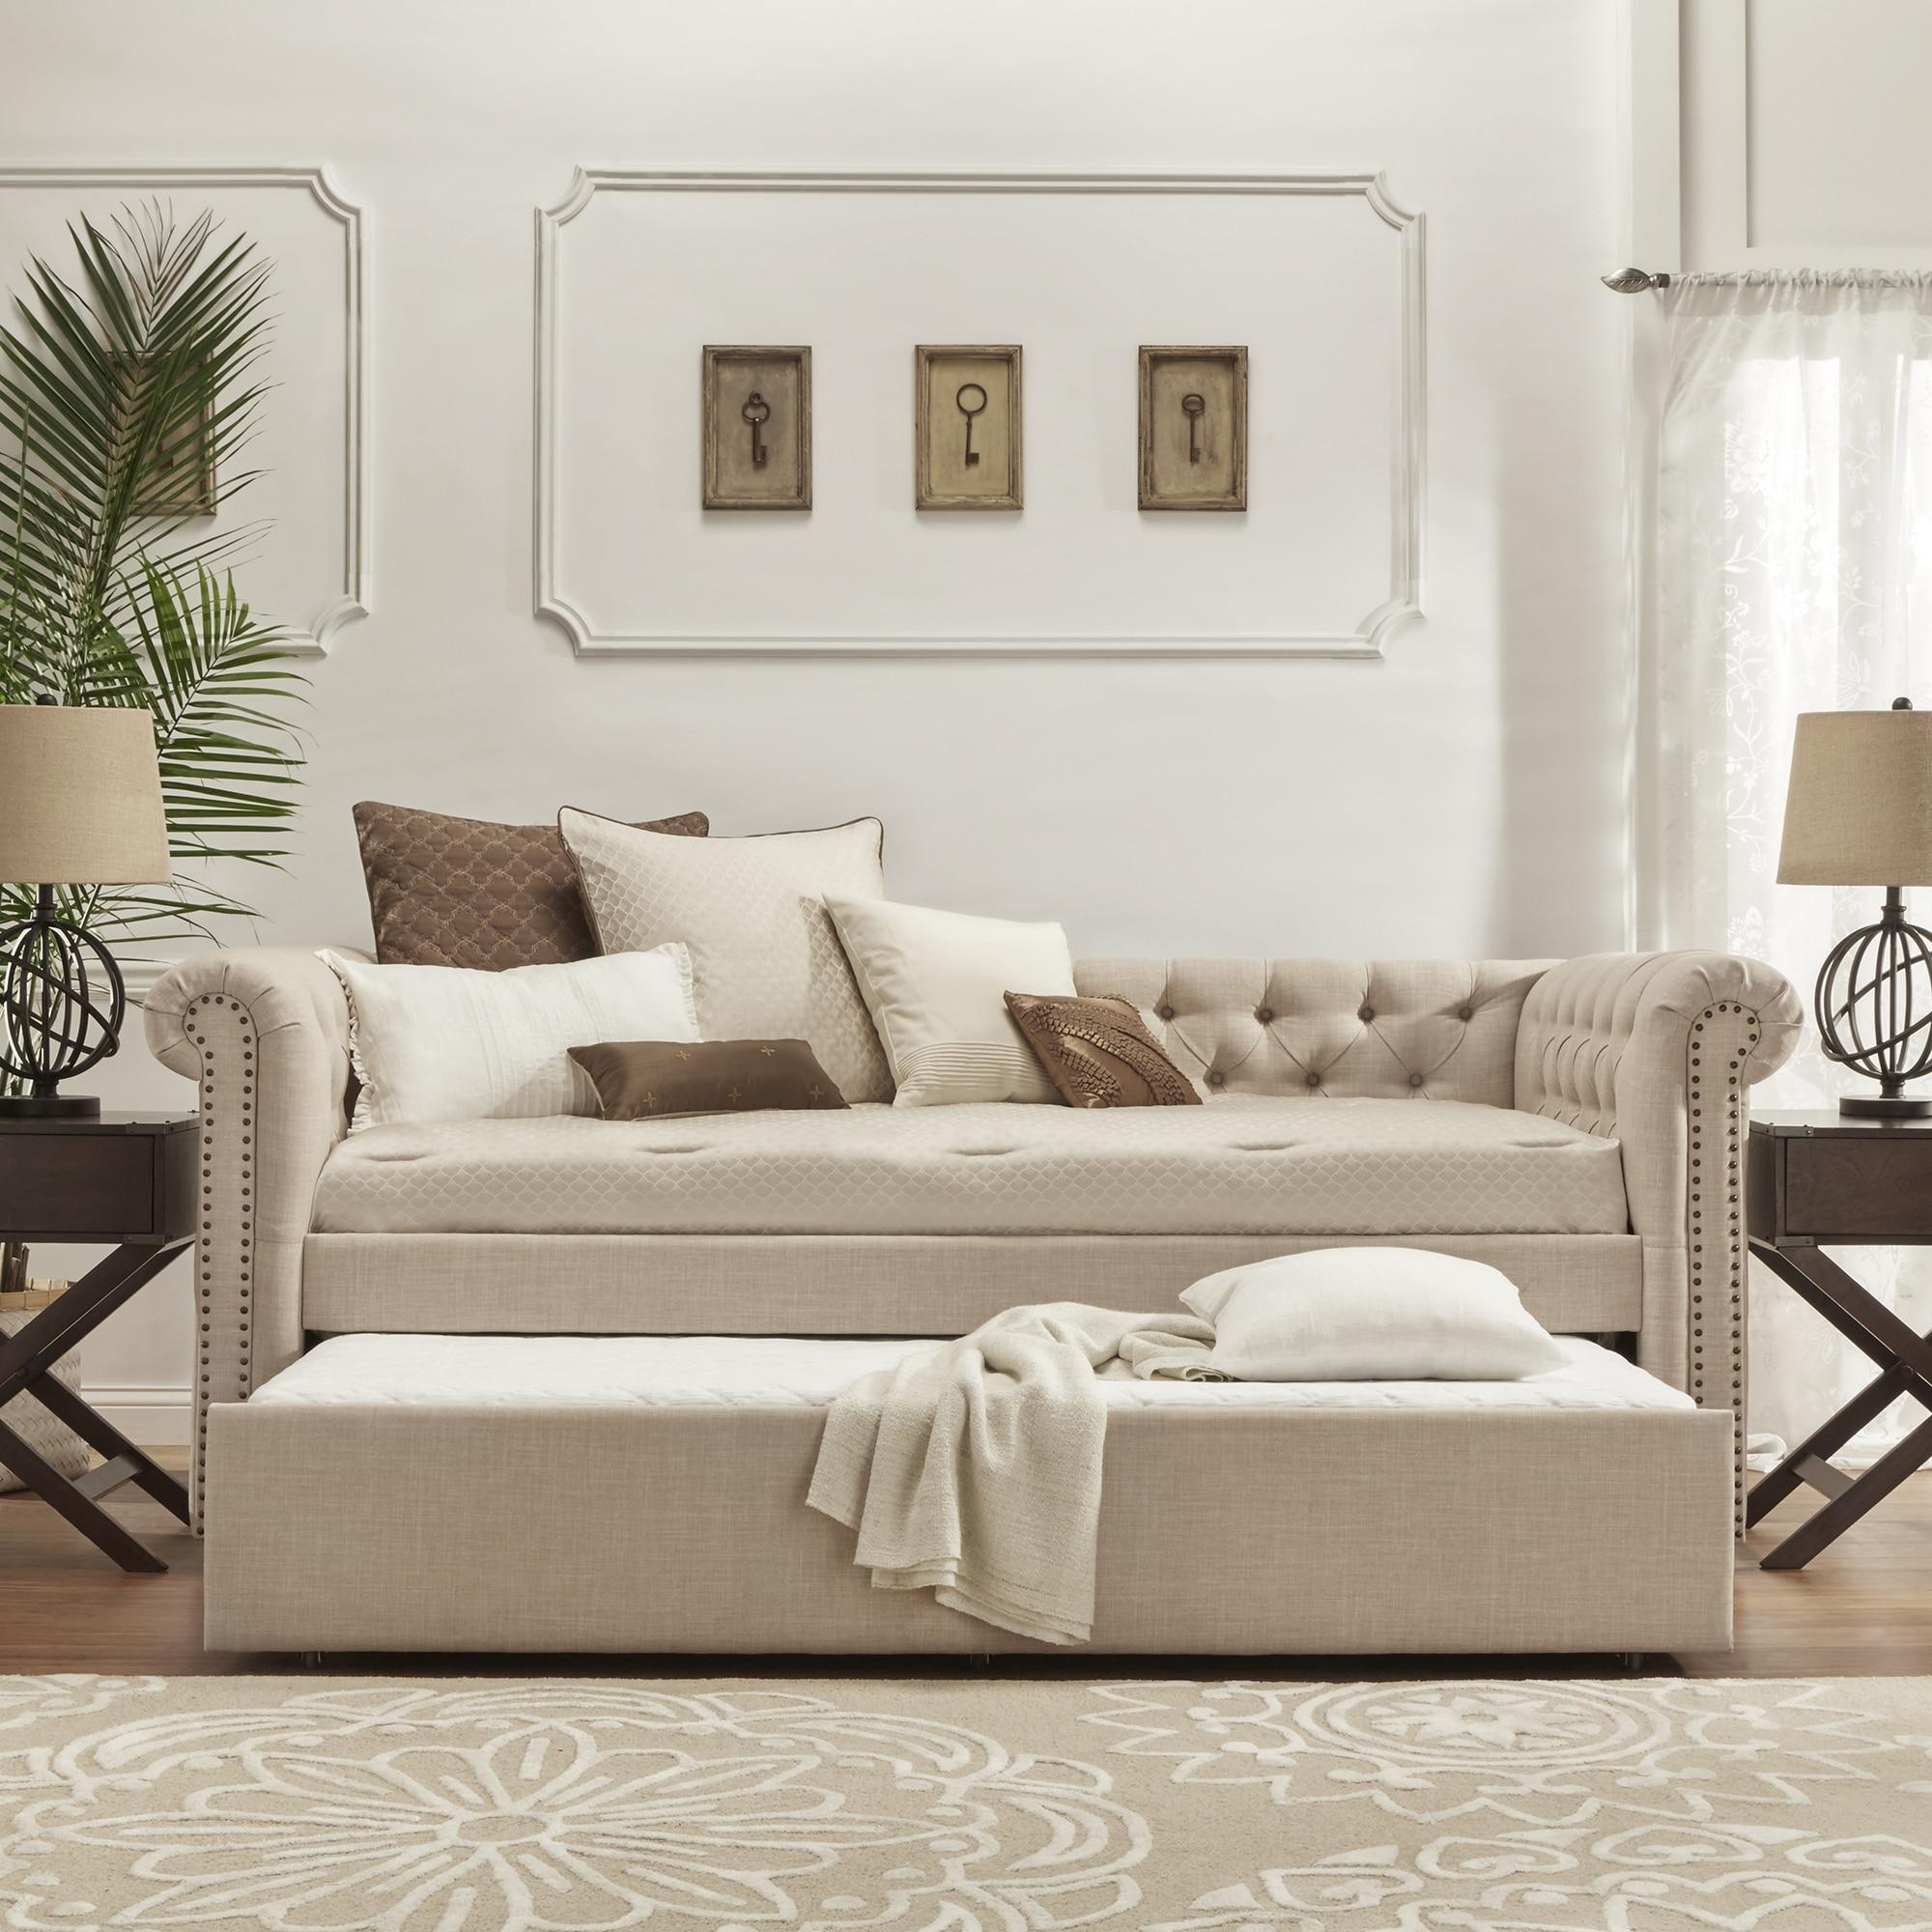 Sofa Daybed With Trundle With Concept Hd Pictures 18539 | Kengire intended for Sofas Daybed With Trundle